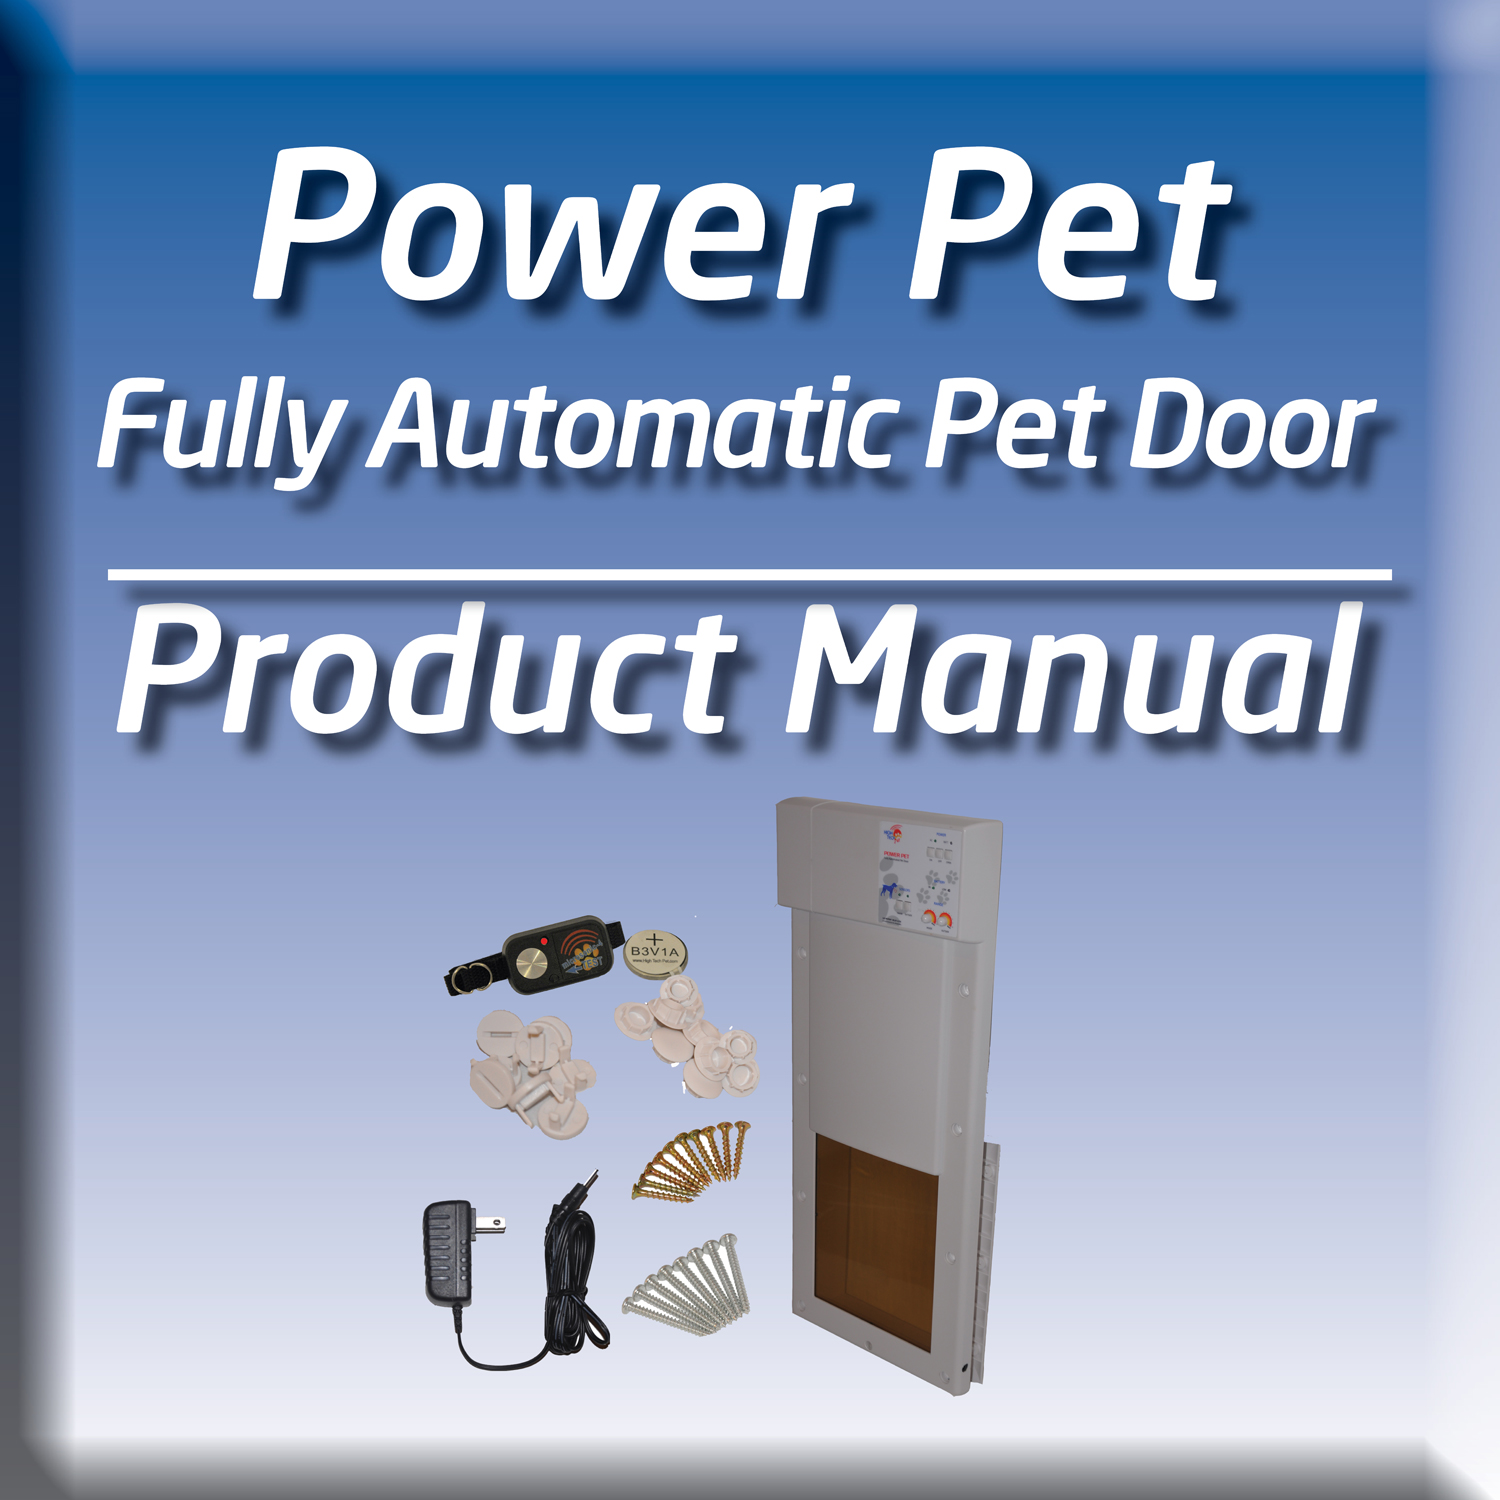 Give your pet the gift of freedom and safety with our electronic pet door